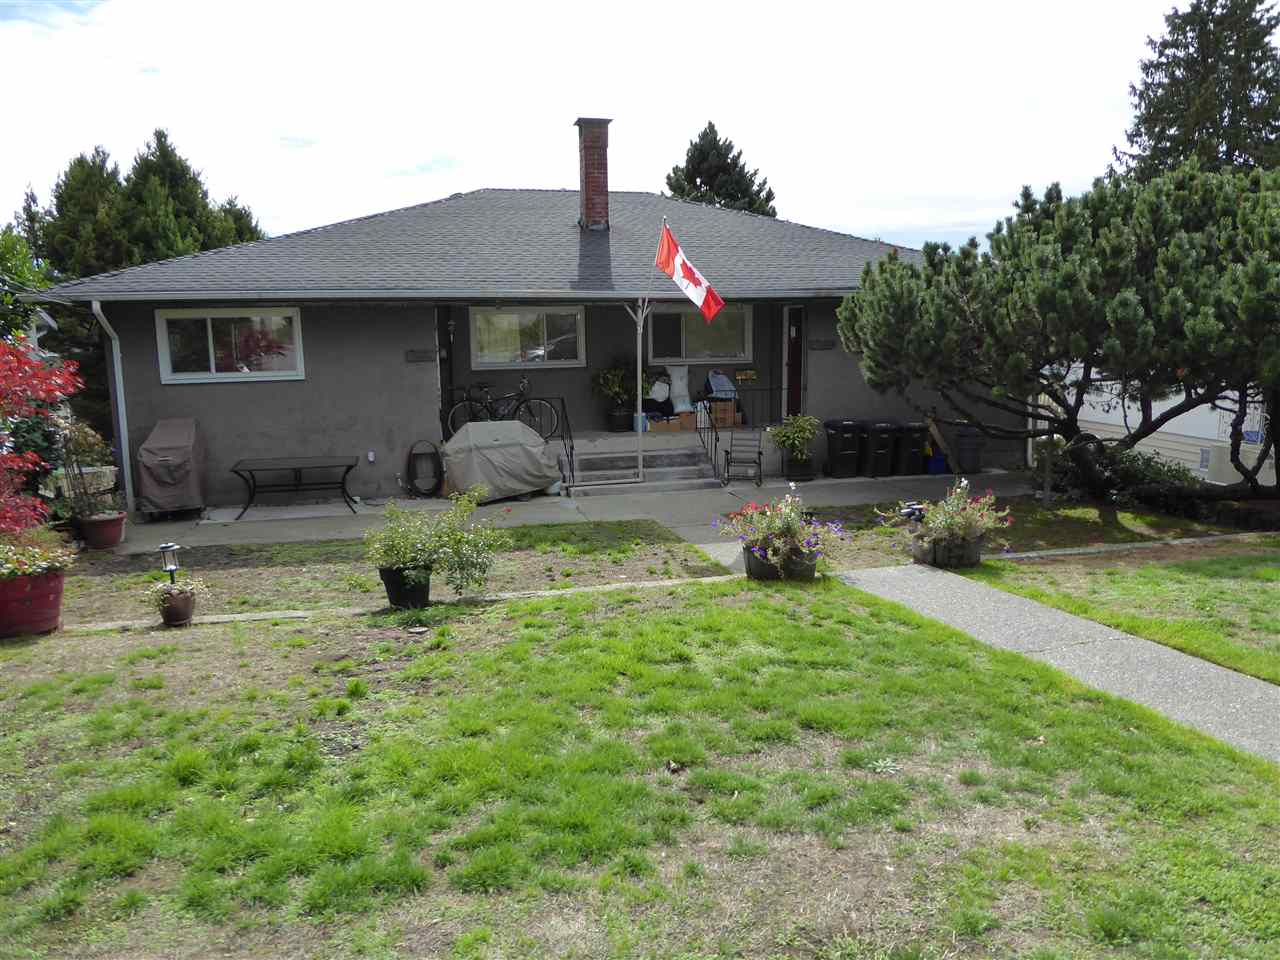 Main Photo: 5286 KEITH Street in Burnaby: South Slope House for sale (Burnaby South)  : MLS® # R2003691